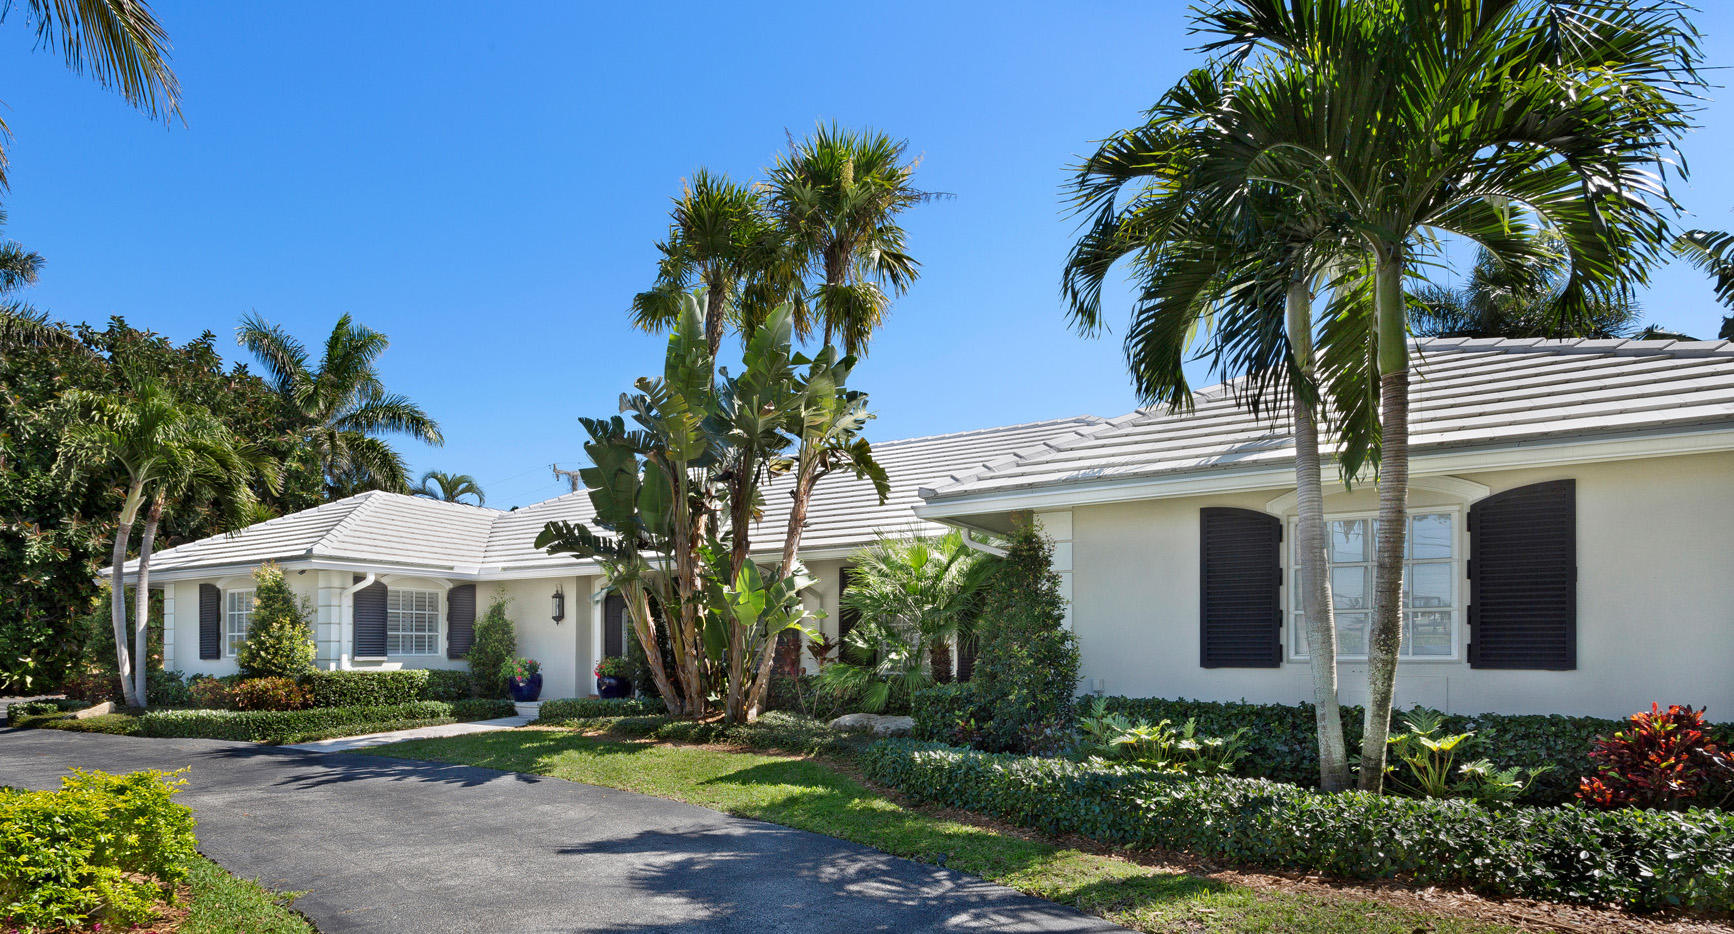 947 Seasage Drive, Delray Beach, Florida 33483, 3 Bedrooms Bedrooms, ,3.1 BathroomsBathrooms,Single Family Detached,For Sale,Seasage,RX-10512849